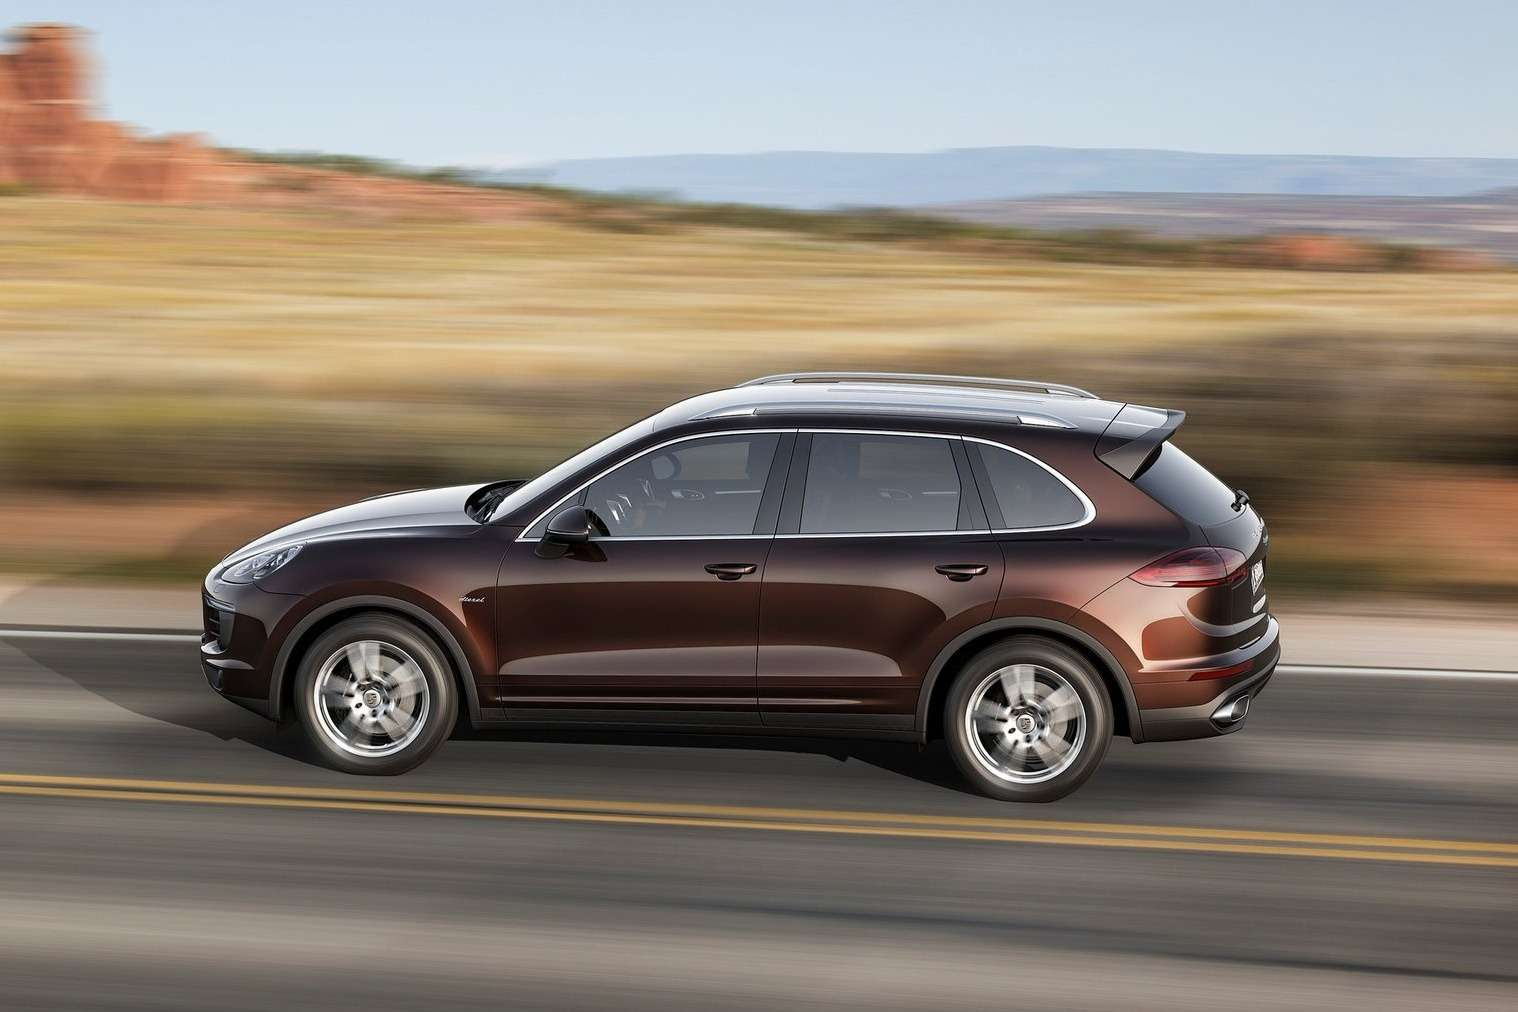 Porsche-Cayenne_2015_1600x1200_wallpaper_05